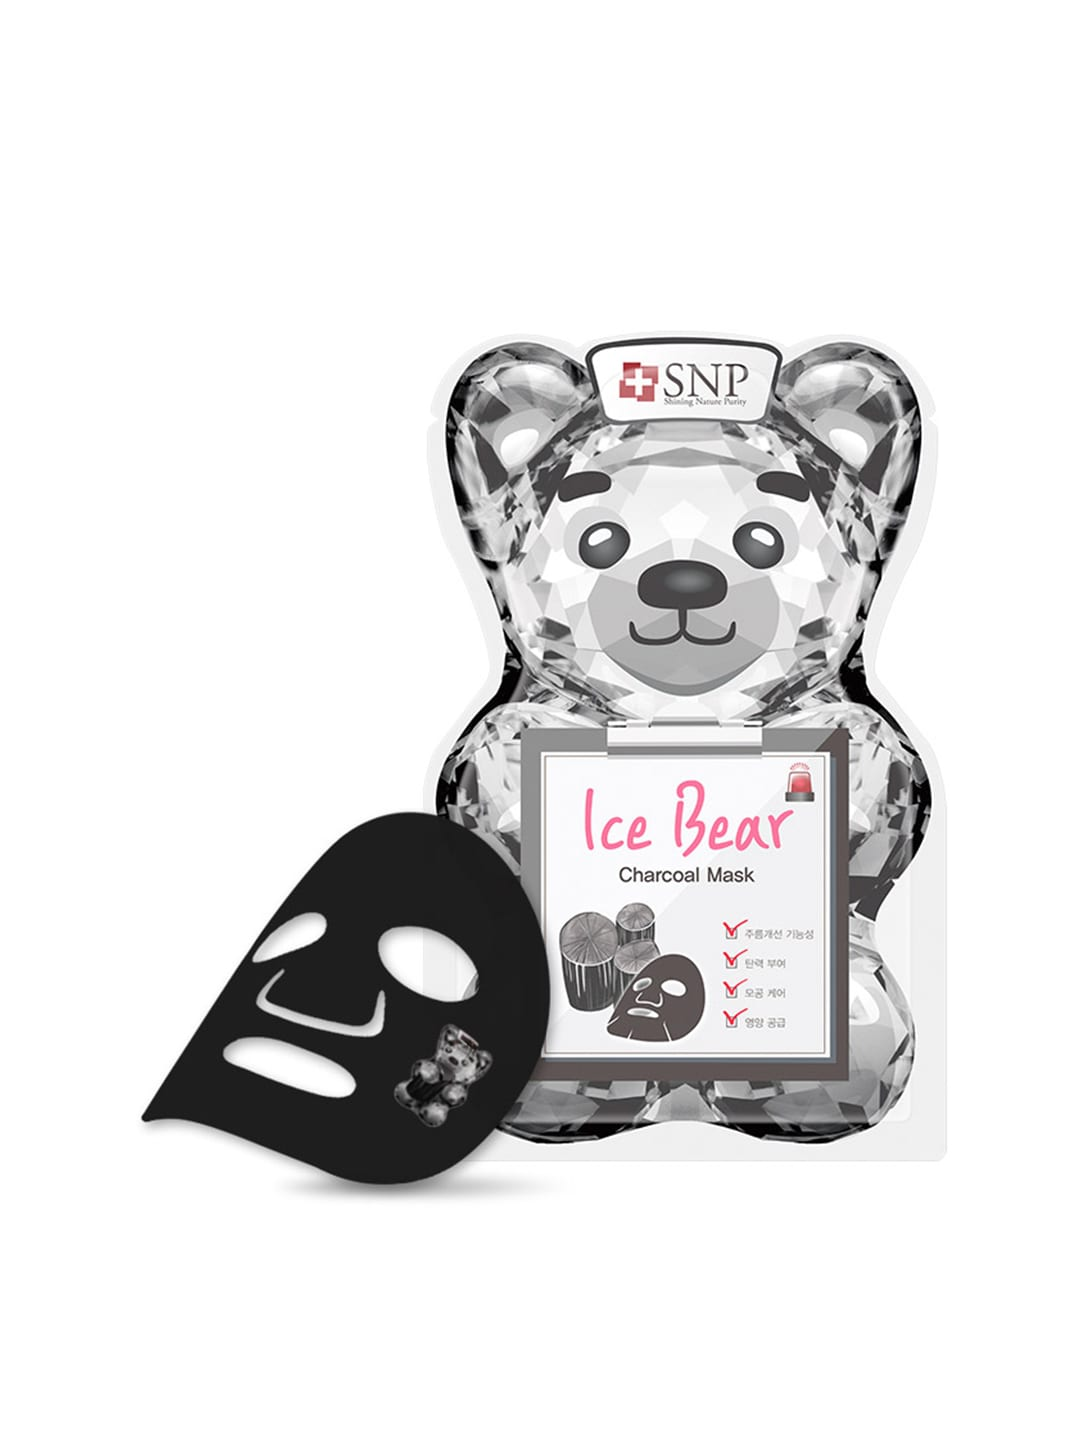 Snp Mask And Peel